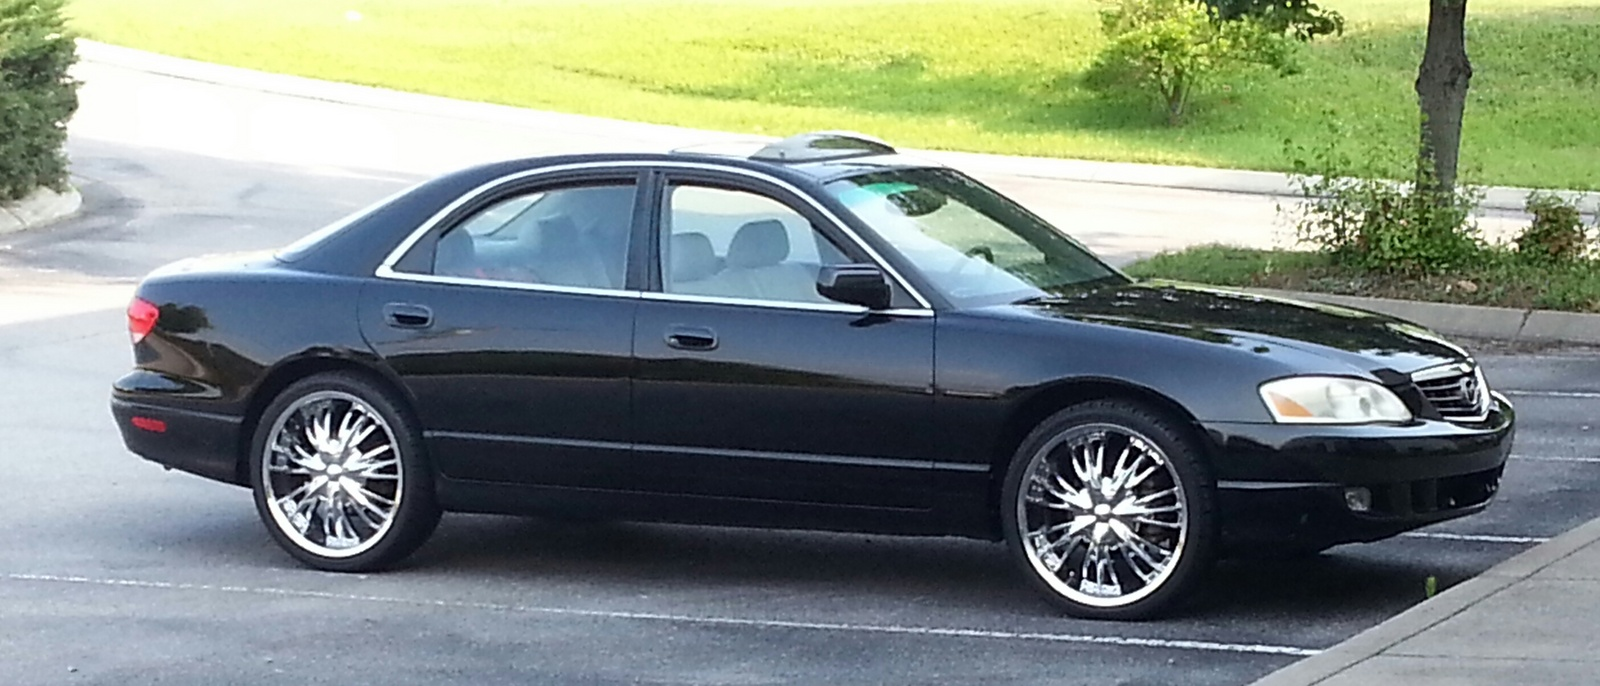 Picture of 2002 Mazda Millenia 4 Dr Premium Special Edition Sedan